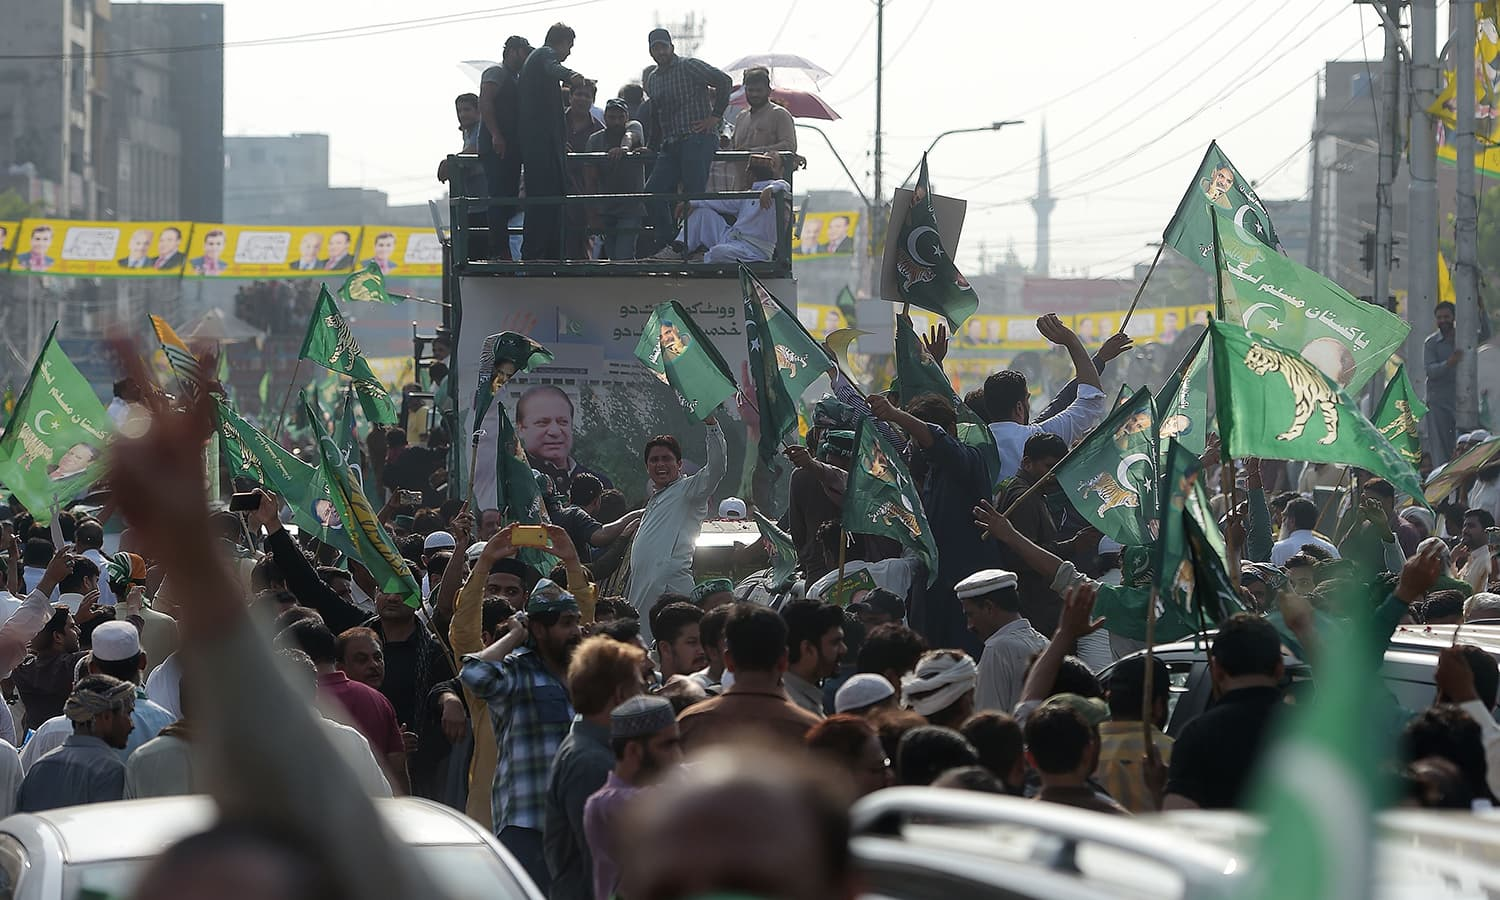 Supporters of Nawaz Sharif take part in a march towards the airport ahead of his arrival. —AFP